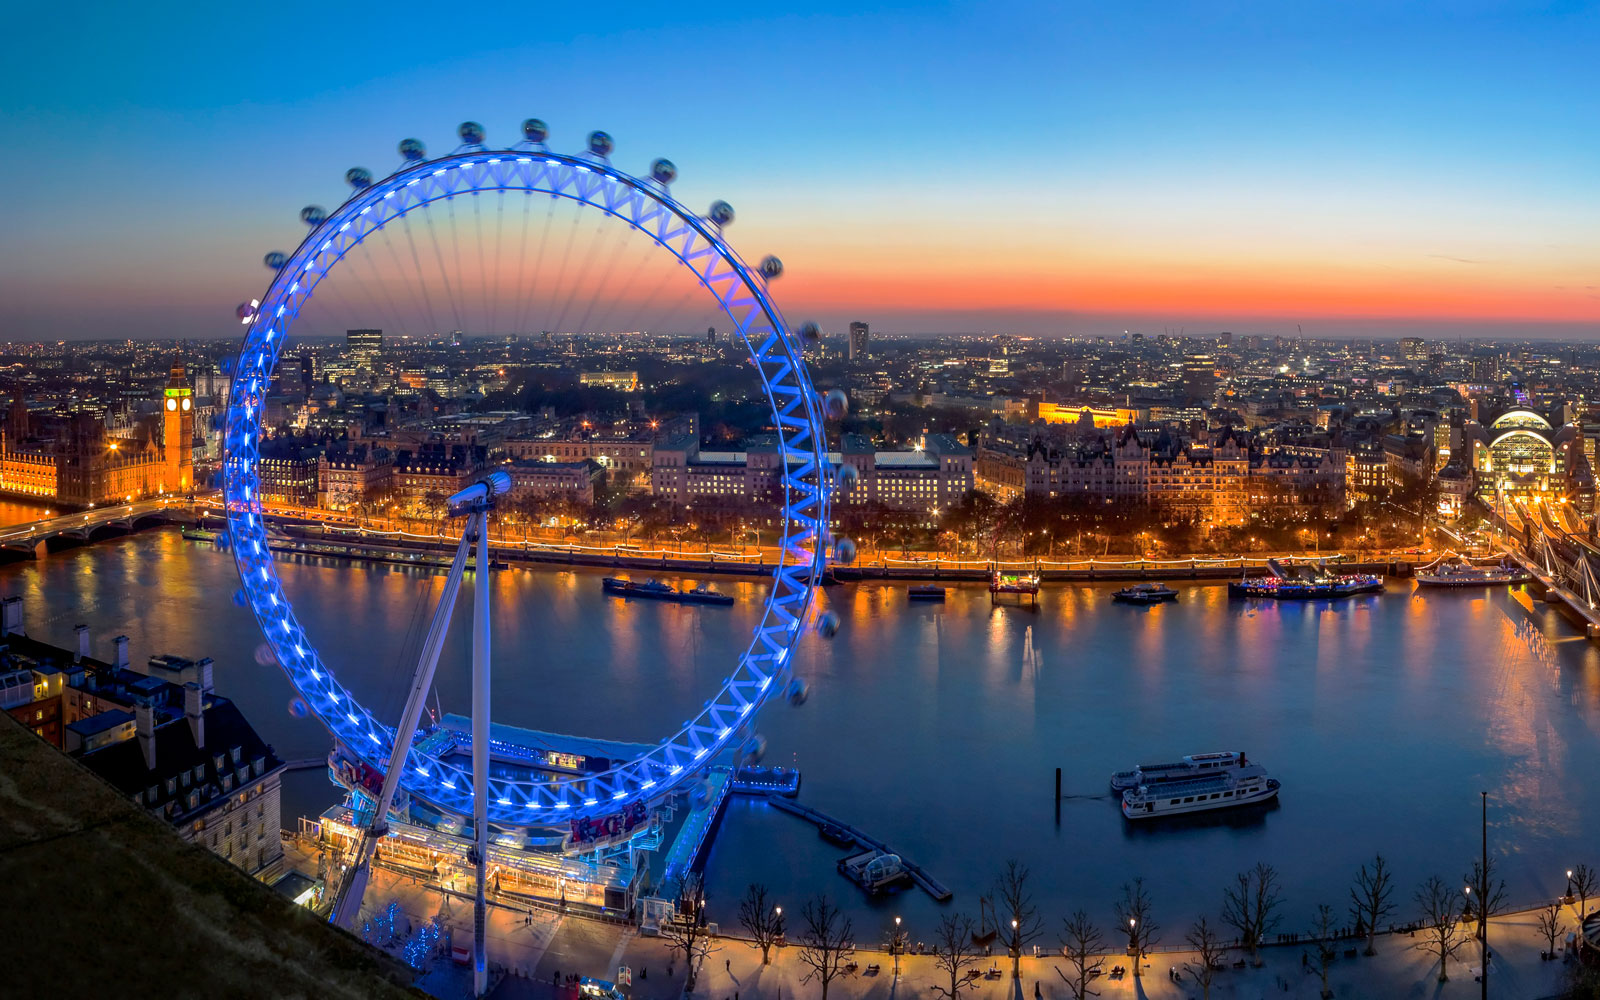 The Coca-Cola London Eye Turns 15